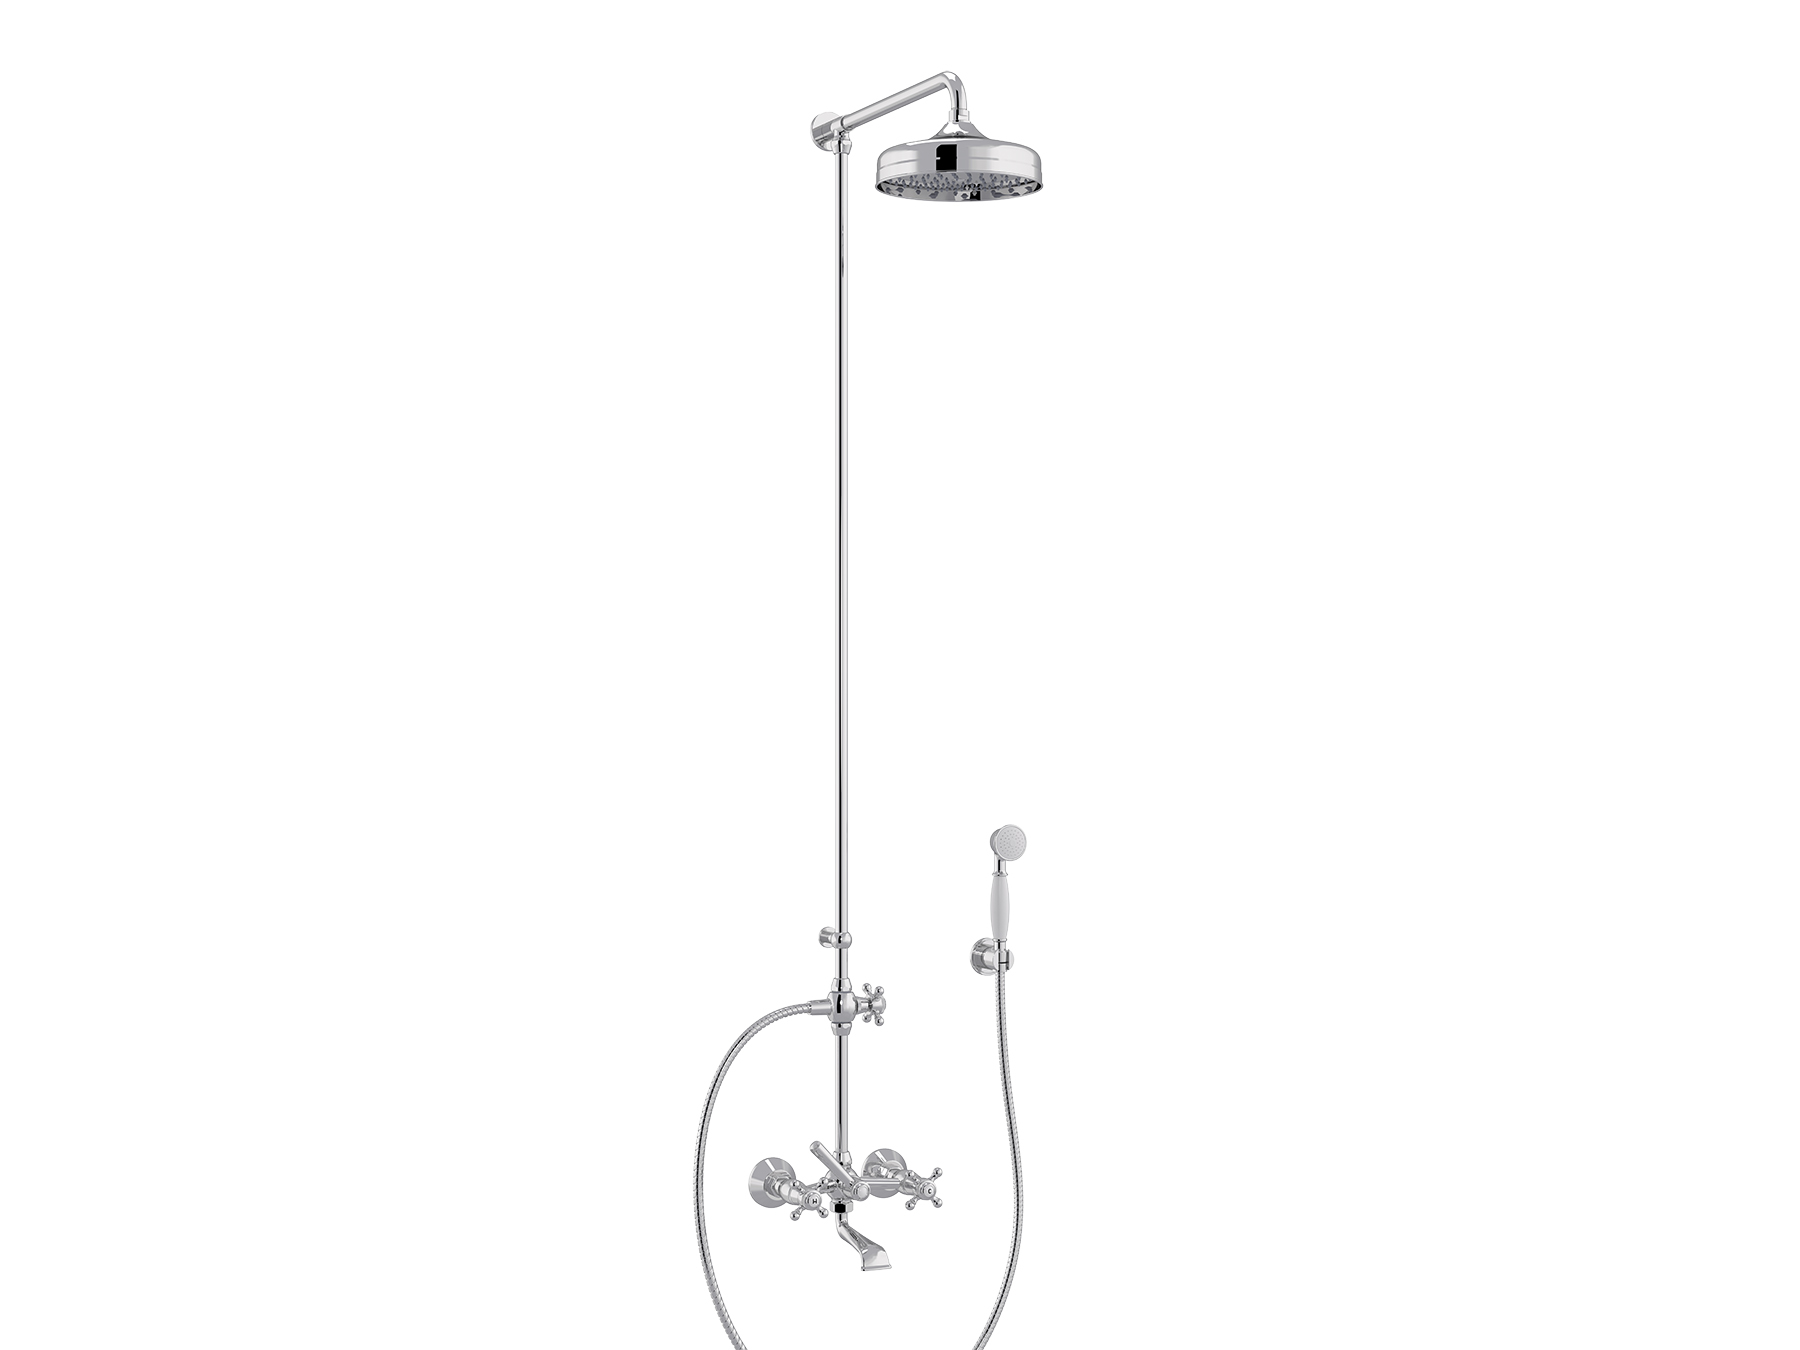 Set bath-shower mixer, head Ø200mm 1921.--.75